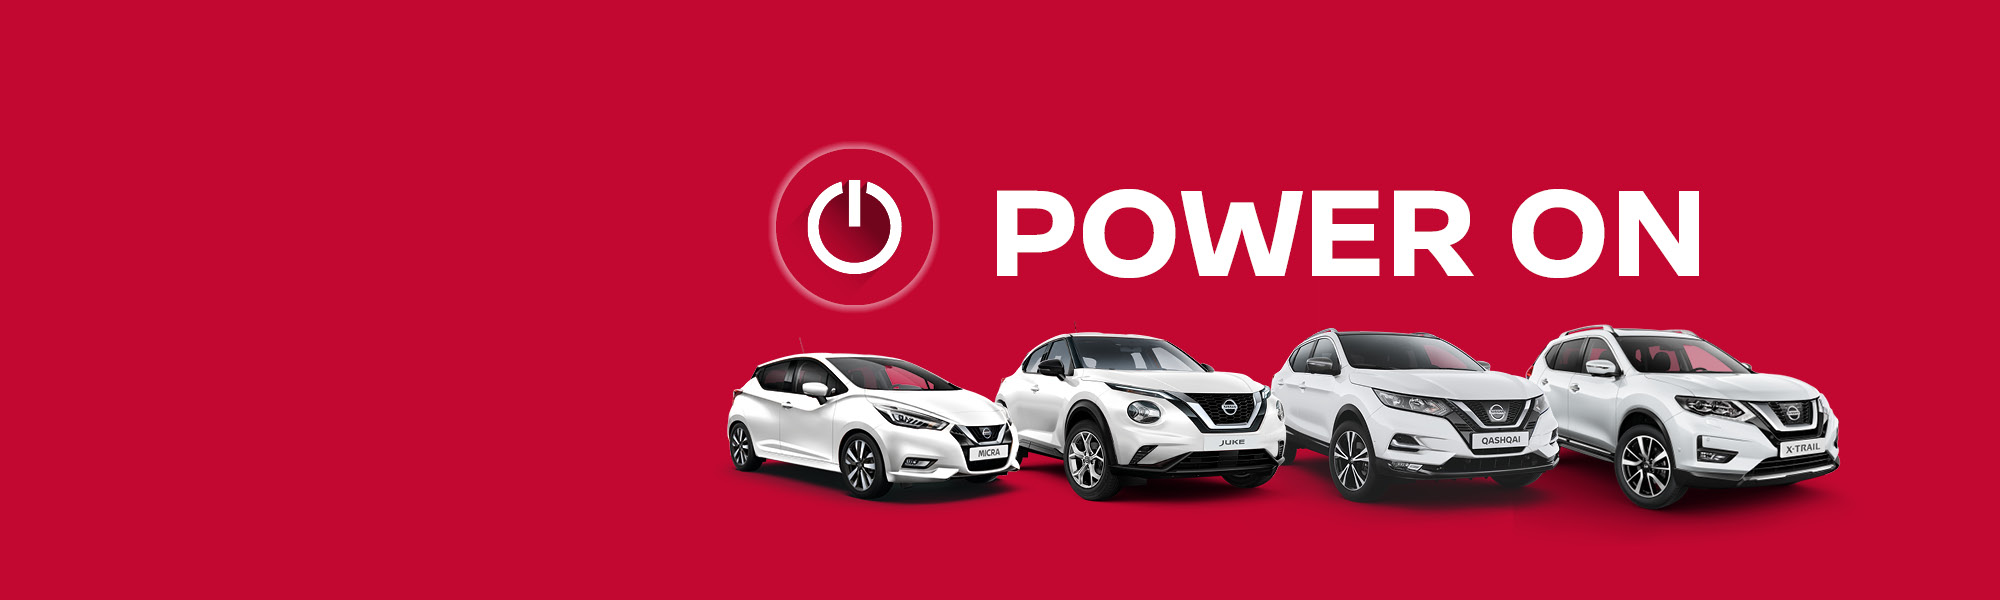 Power on mit unseren NISSAN Modellen